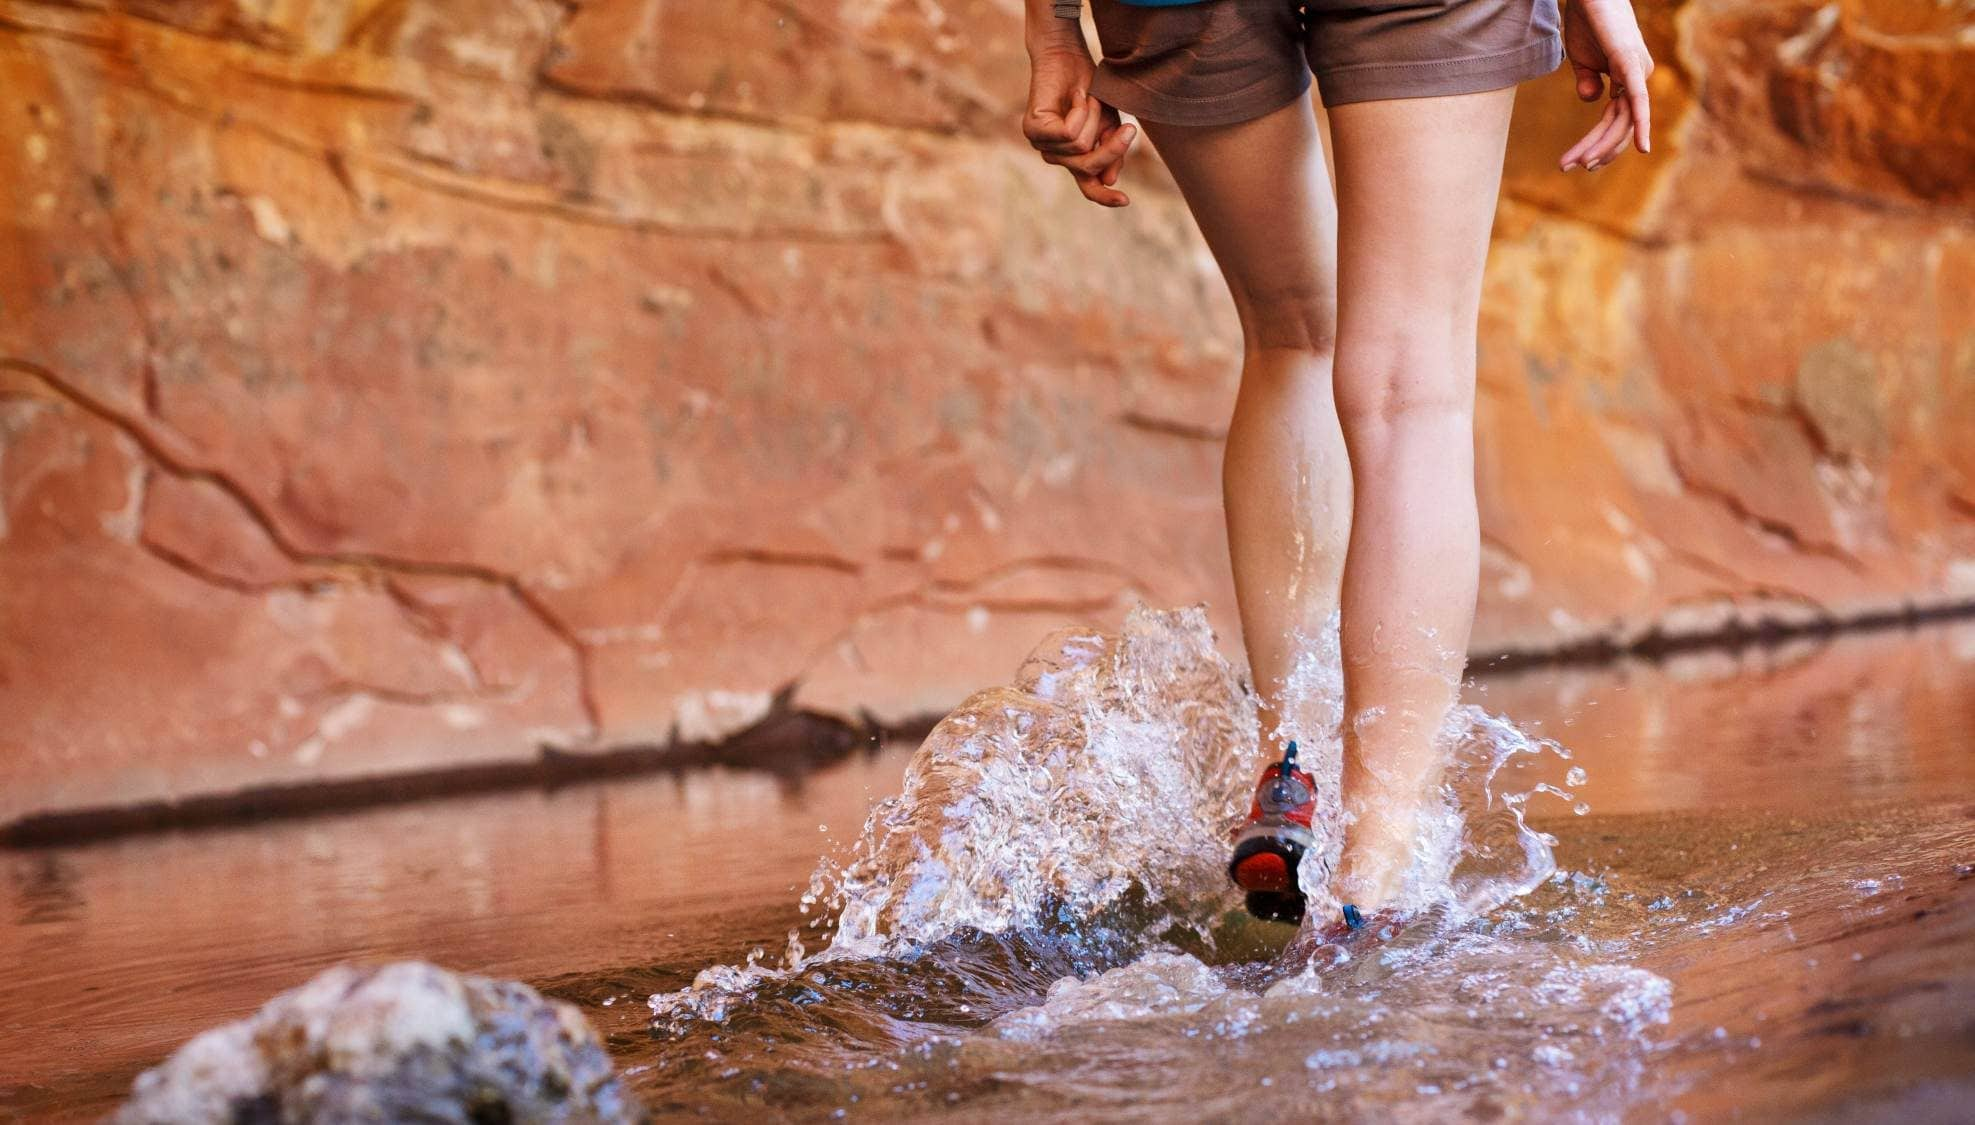 The 6 Best Waterproof Boots for Men and Women